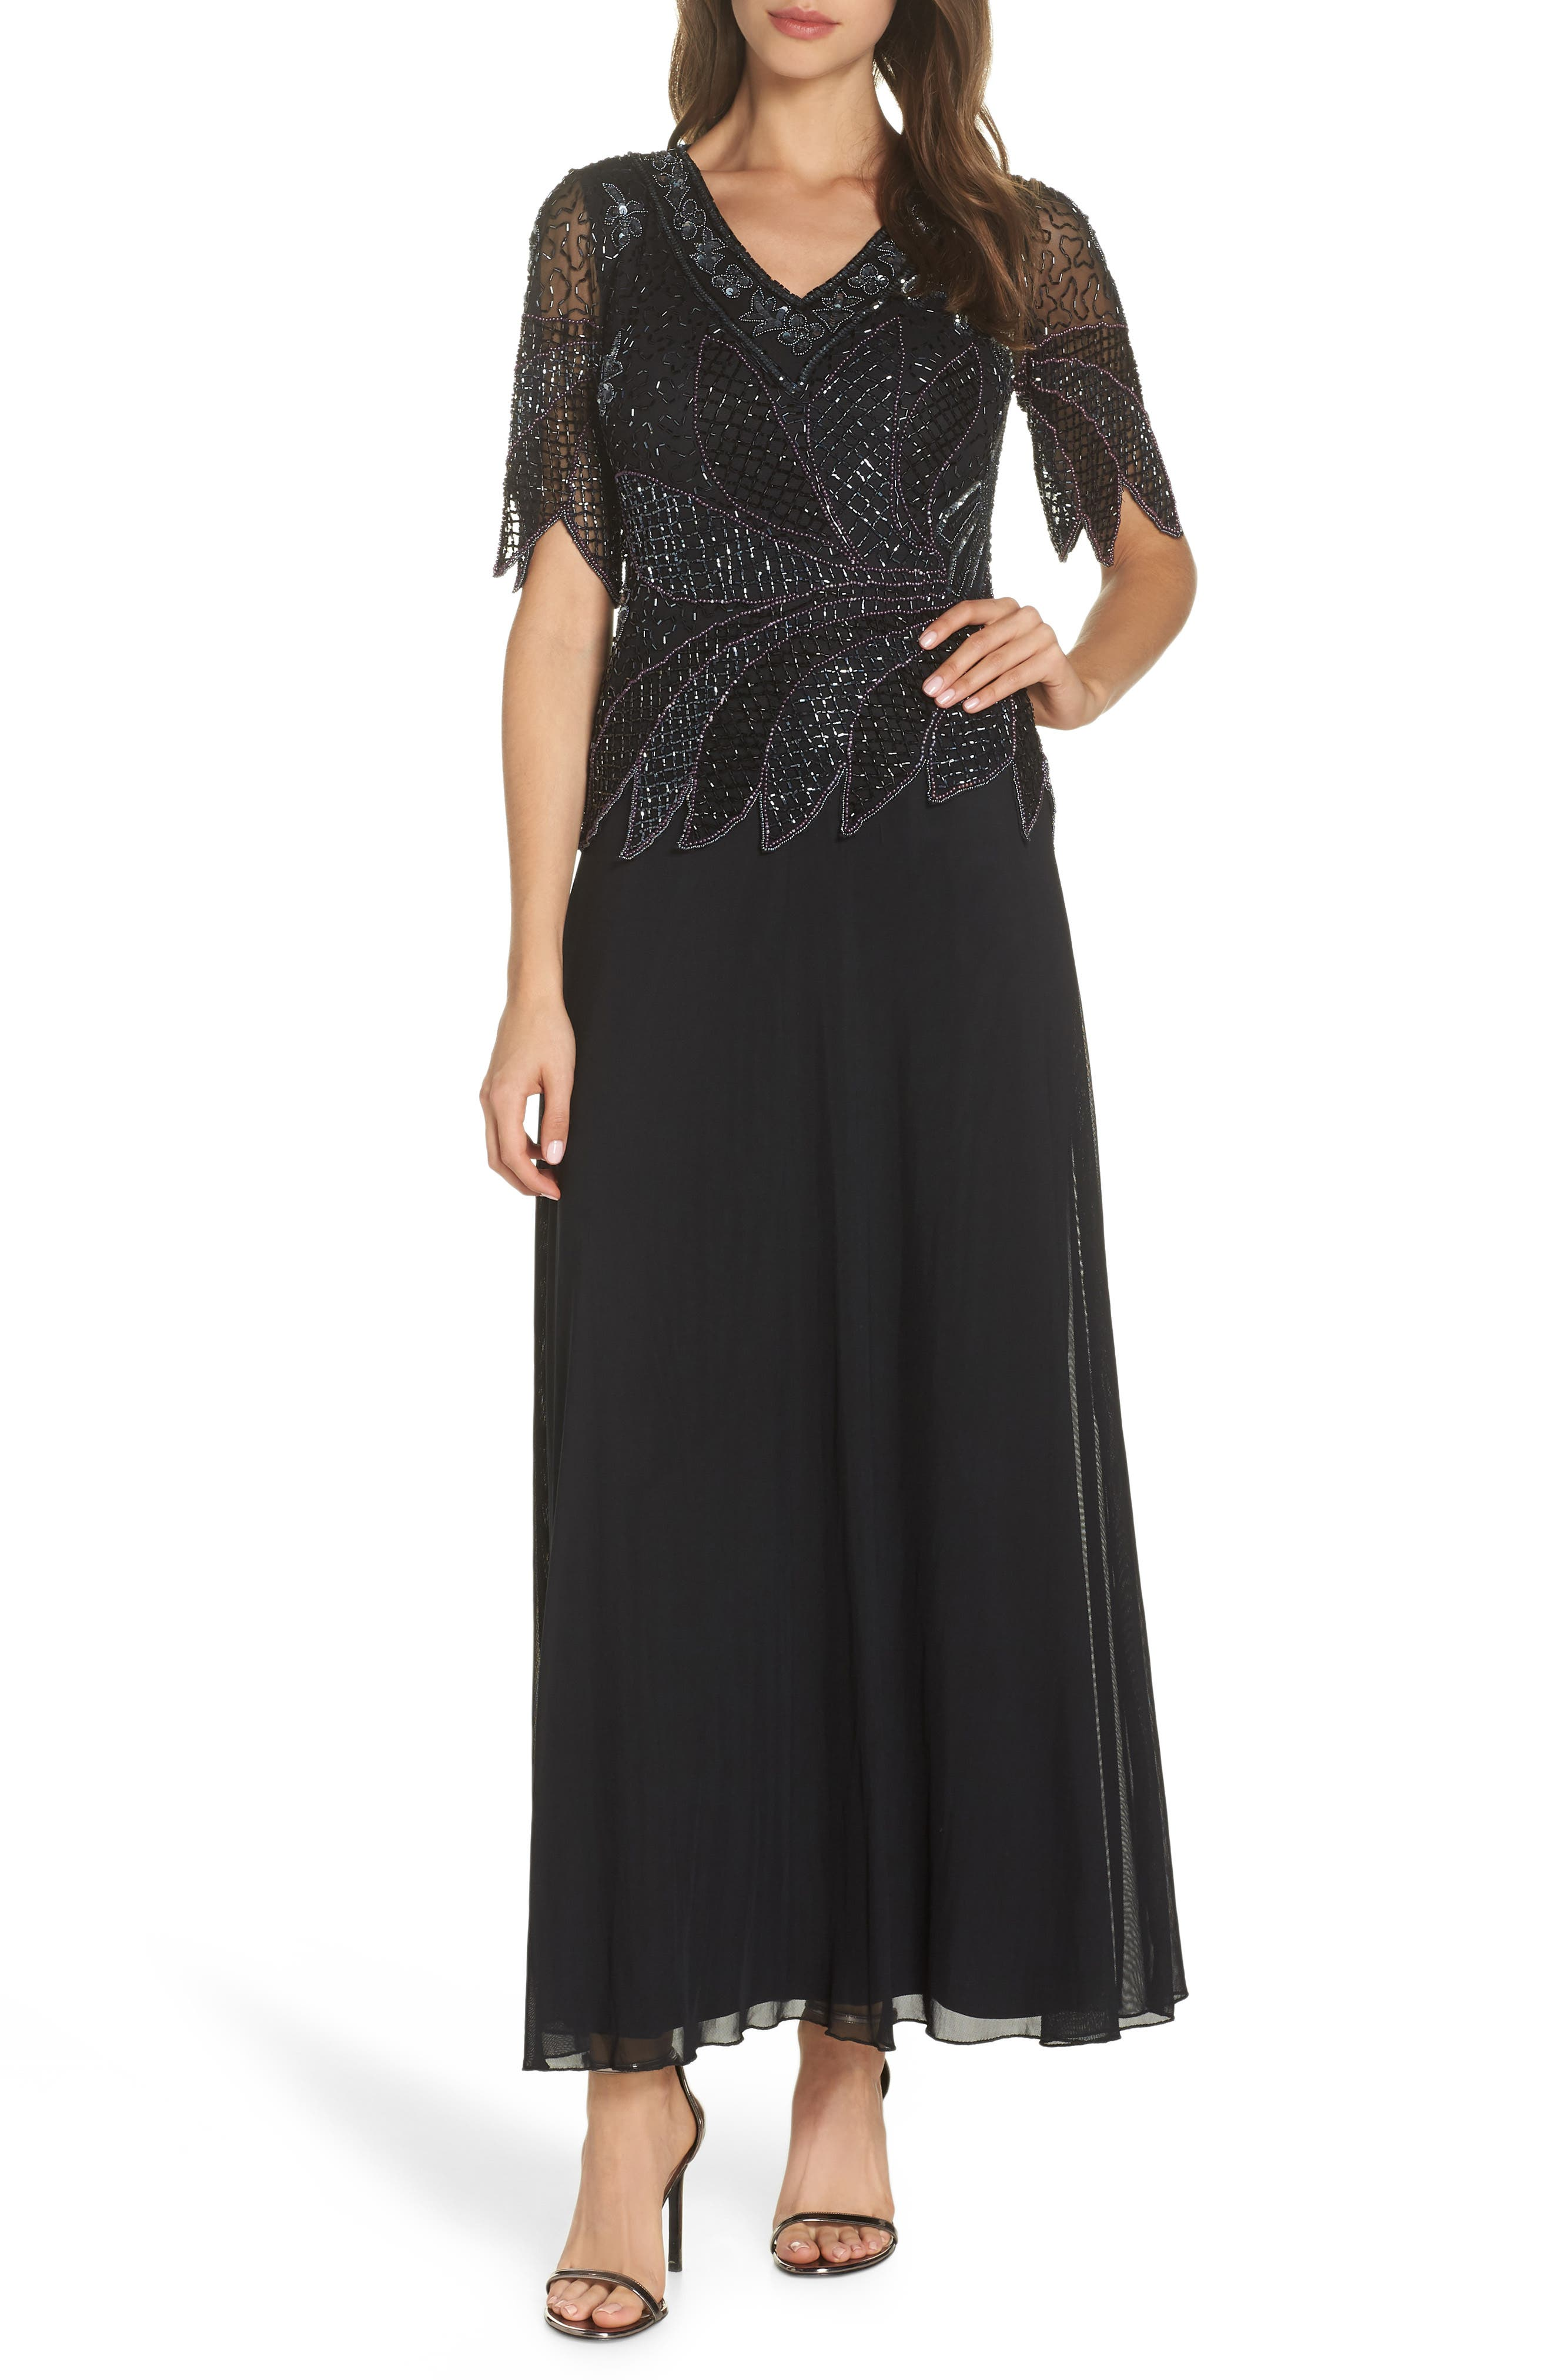 1920s Evening Dresses & Formal Gowns Womens Pisarro Nights Beaded Mock Two-Piece Gown $218.00 AT vintagedancer.com